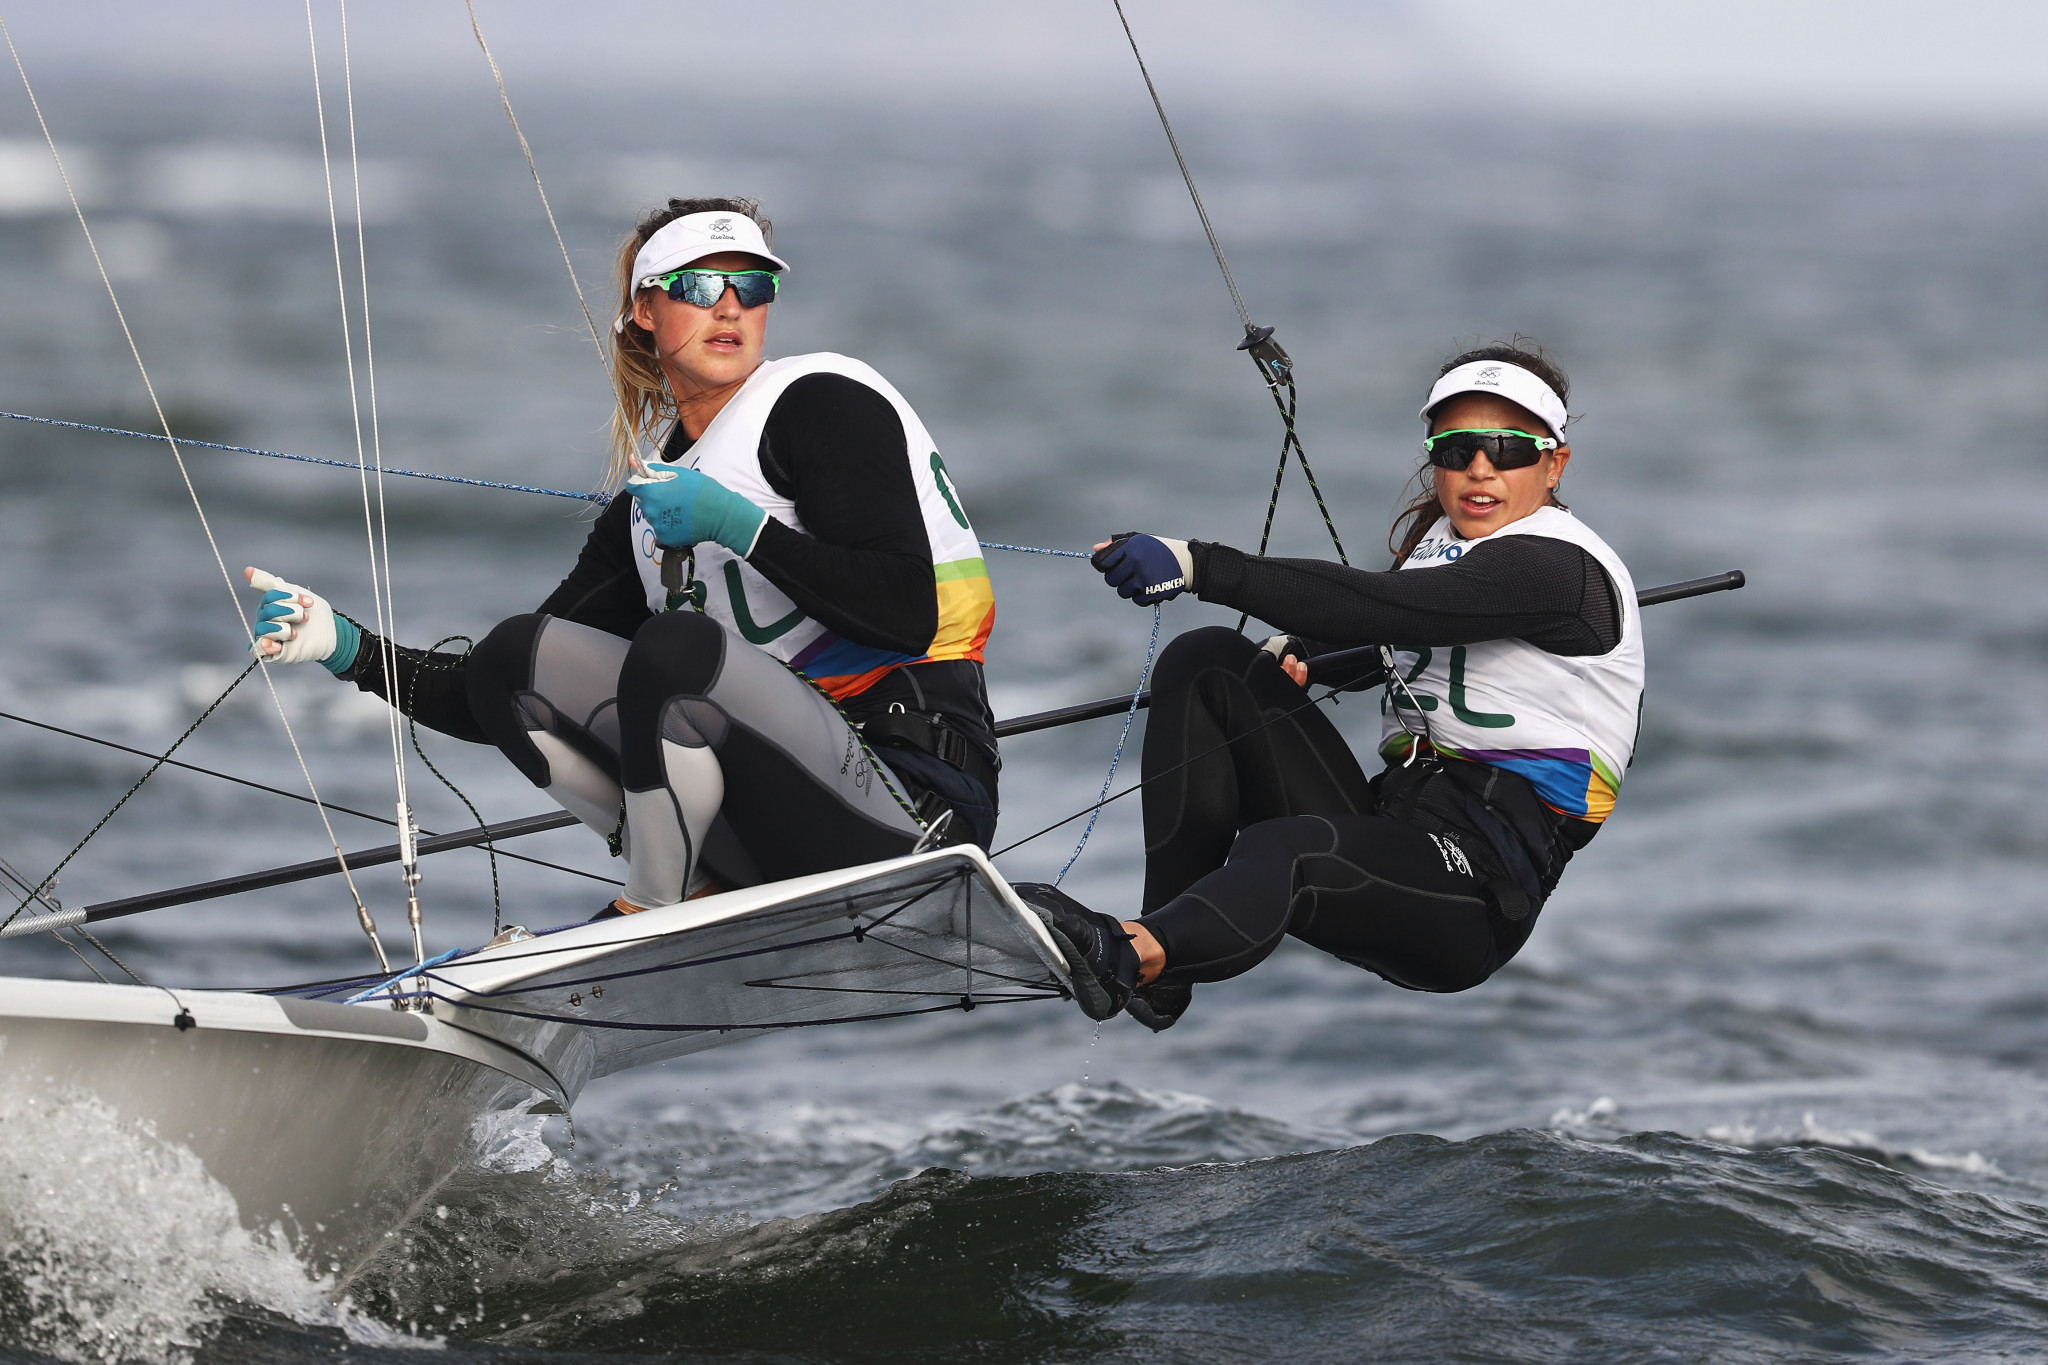 Brazil's Martine Grael and Kahena Kunze performed solidly once more to extend their lead at the 49erFX European Championships in England ©Getty Images